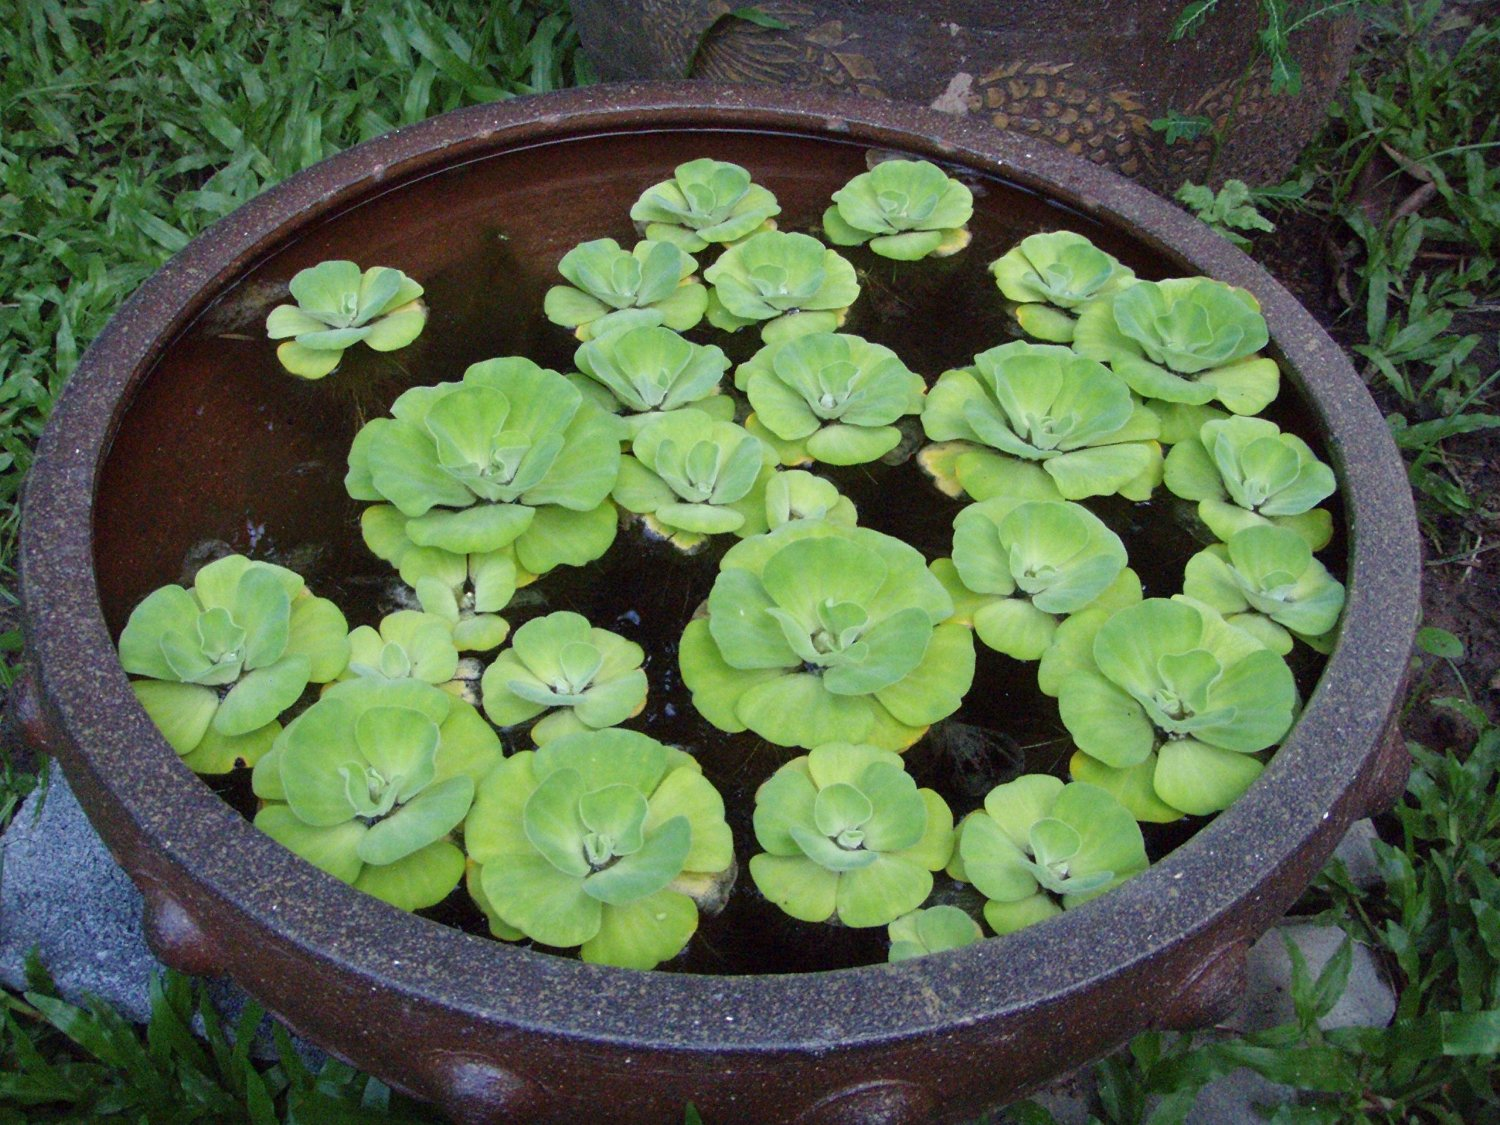 Water lettuce floating live pond plants aquarium plants for Pond with plants